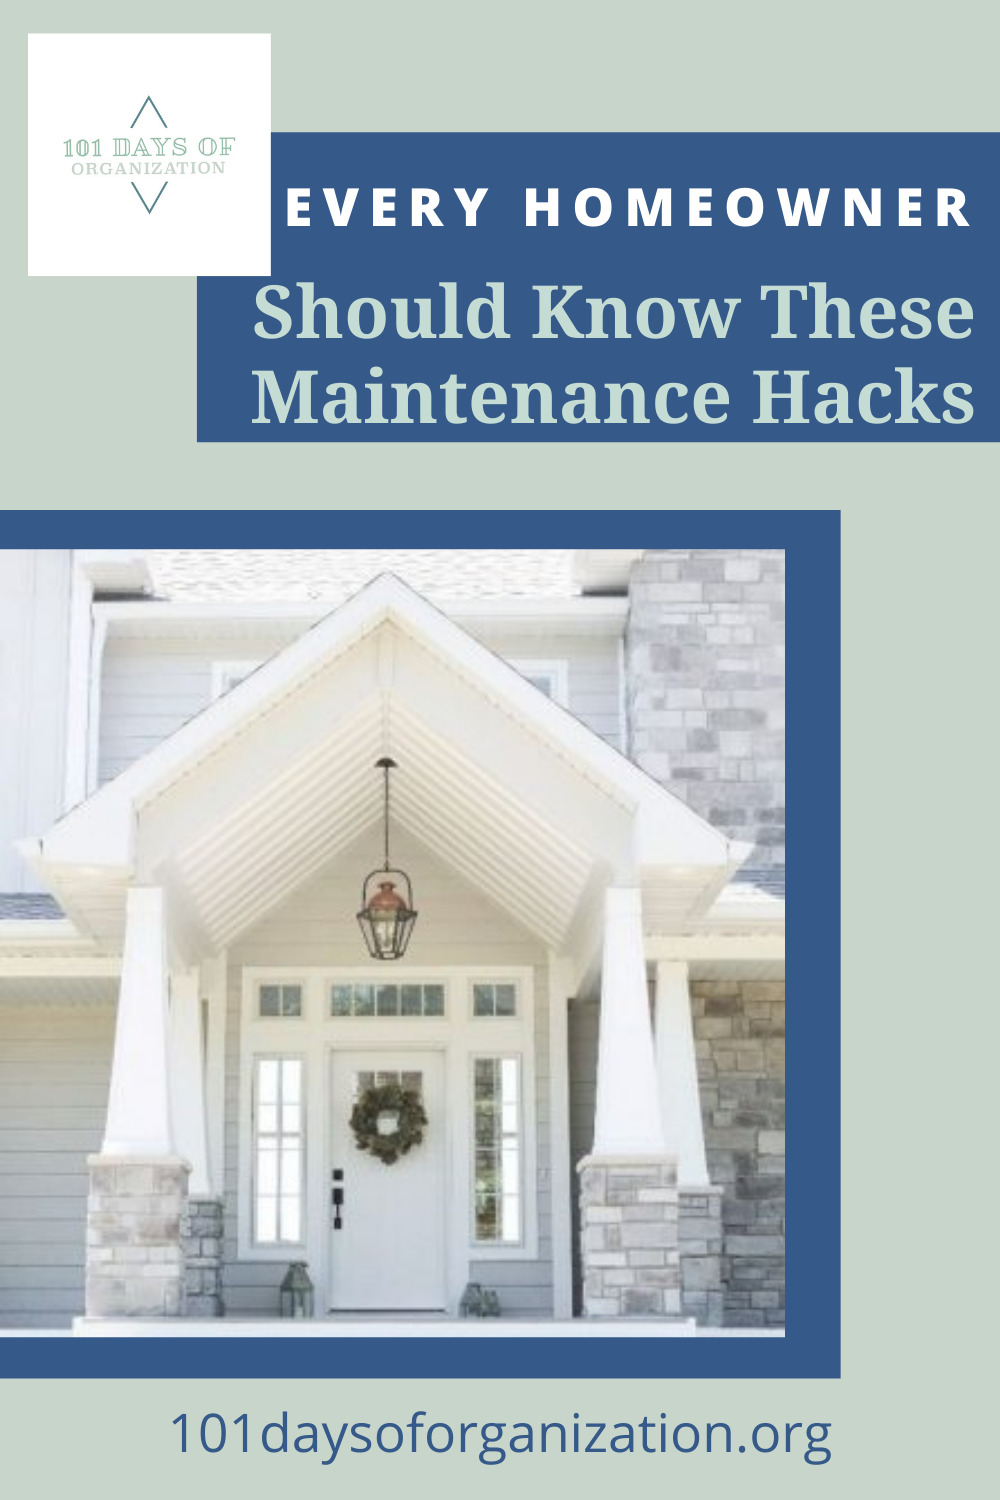 101daysoforganization.org has easy tips and tricks to make getting and staying organized a breeze. Find the best ways to tackle the messes you've been avoiding. These home maintenance hacks will make your life a whole lot easier.